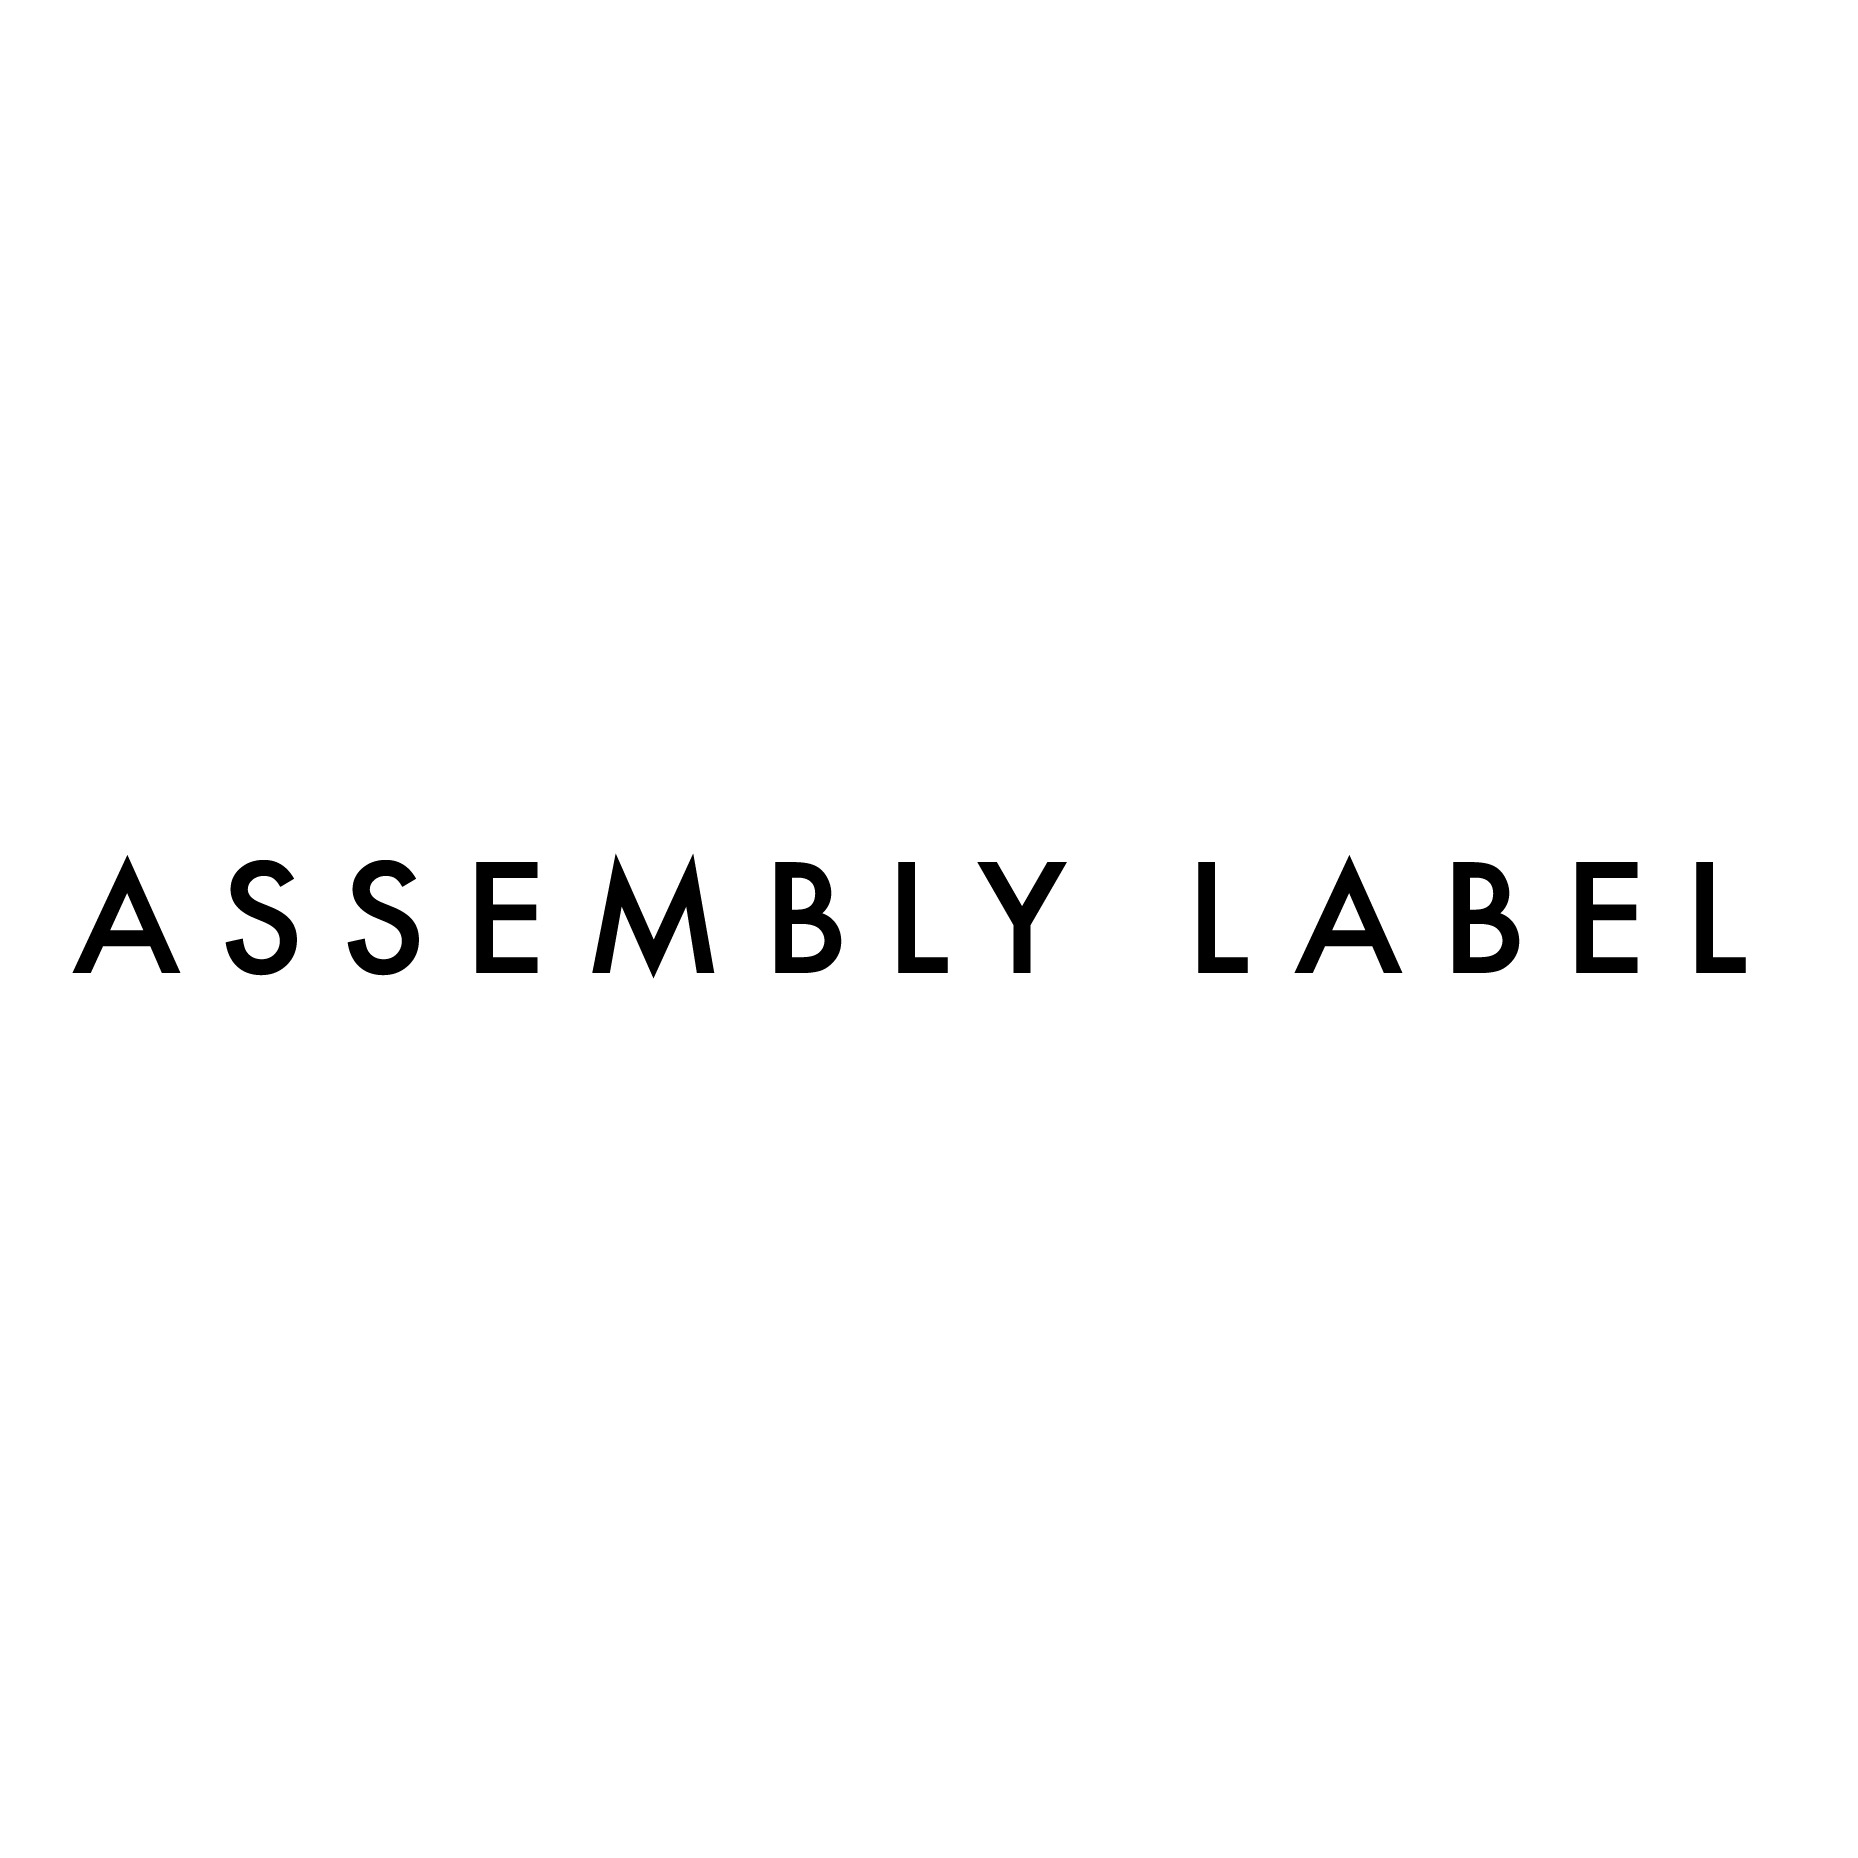 Assembly Label.jpg